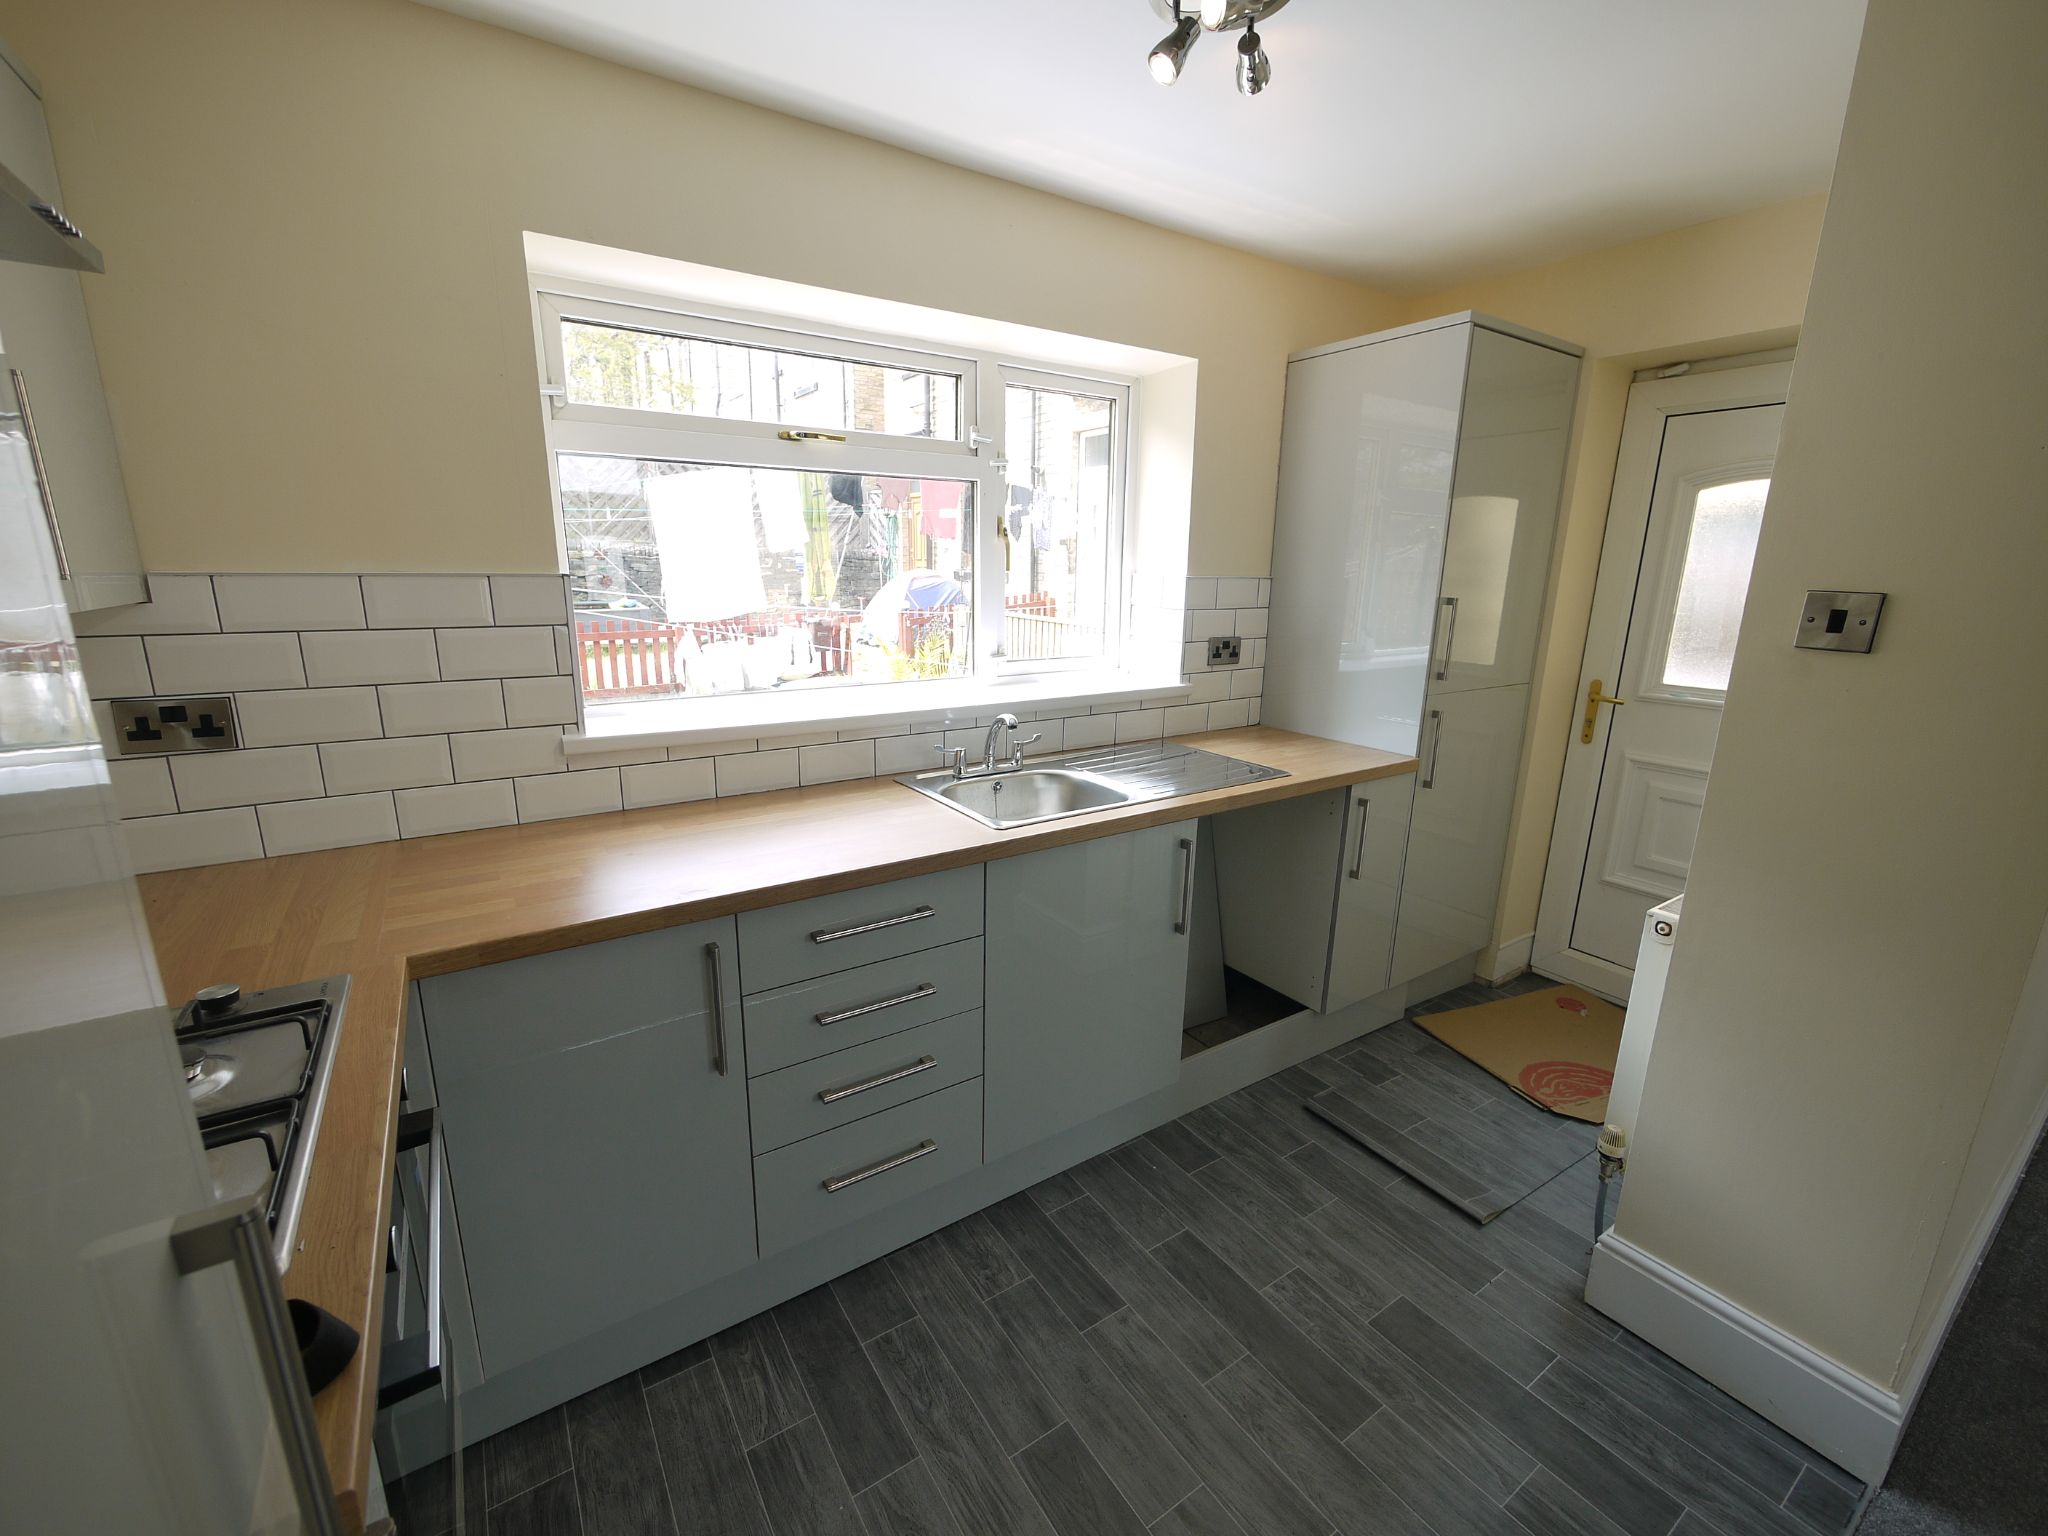 2 bedroom mid terraced house For Sale in Brighouse - Kitchen 2.